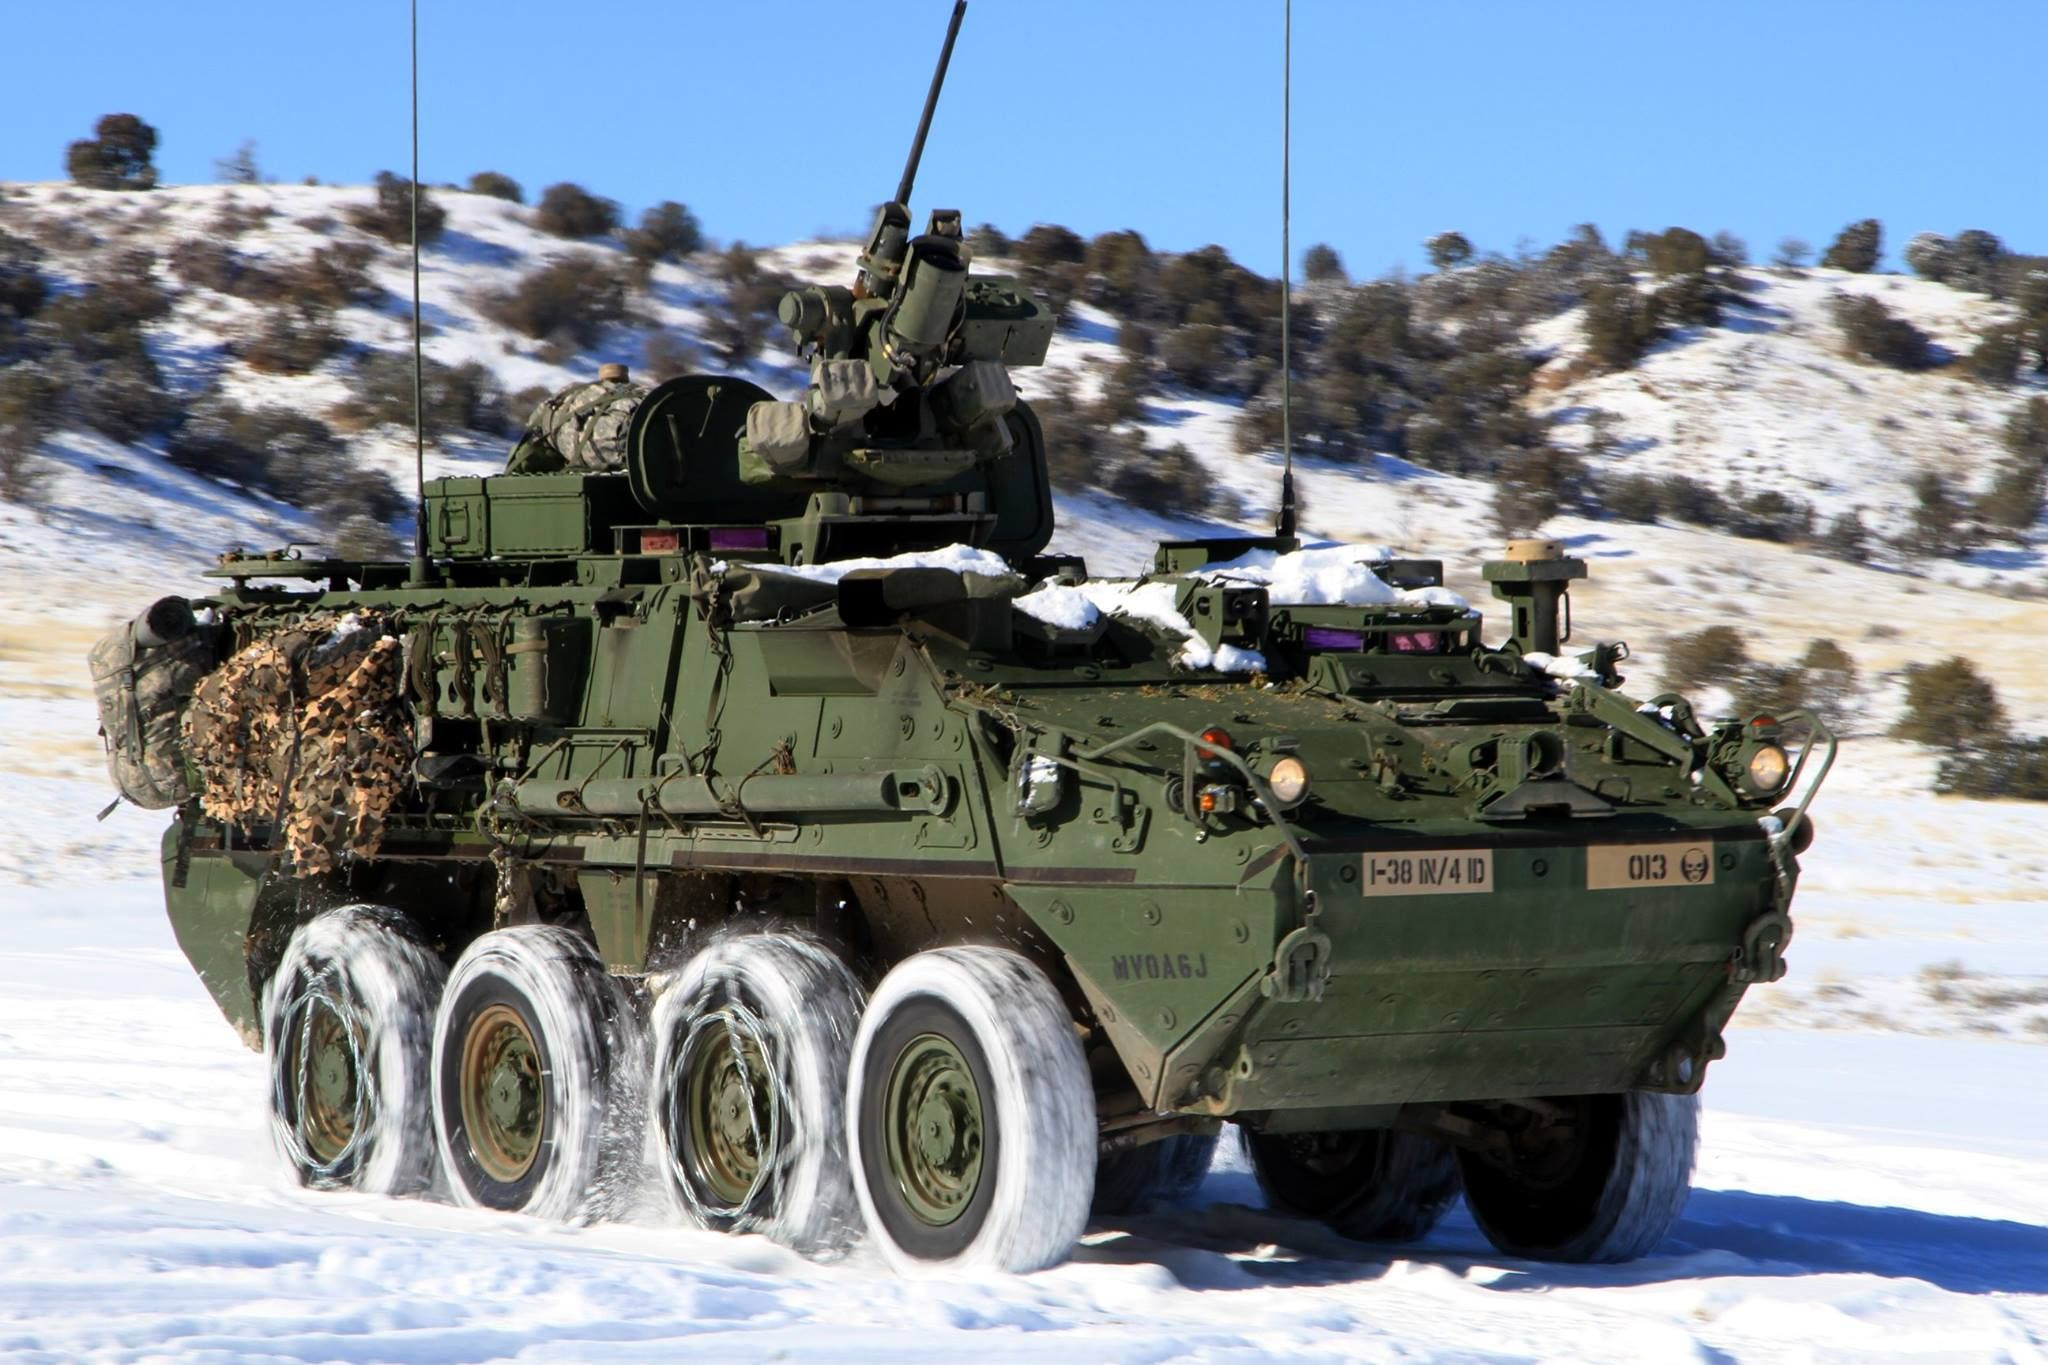 Rooikat rooikat pinterest military armored car and armored vehicles